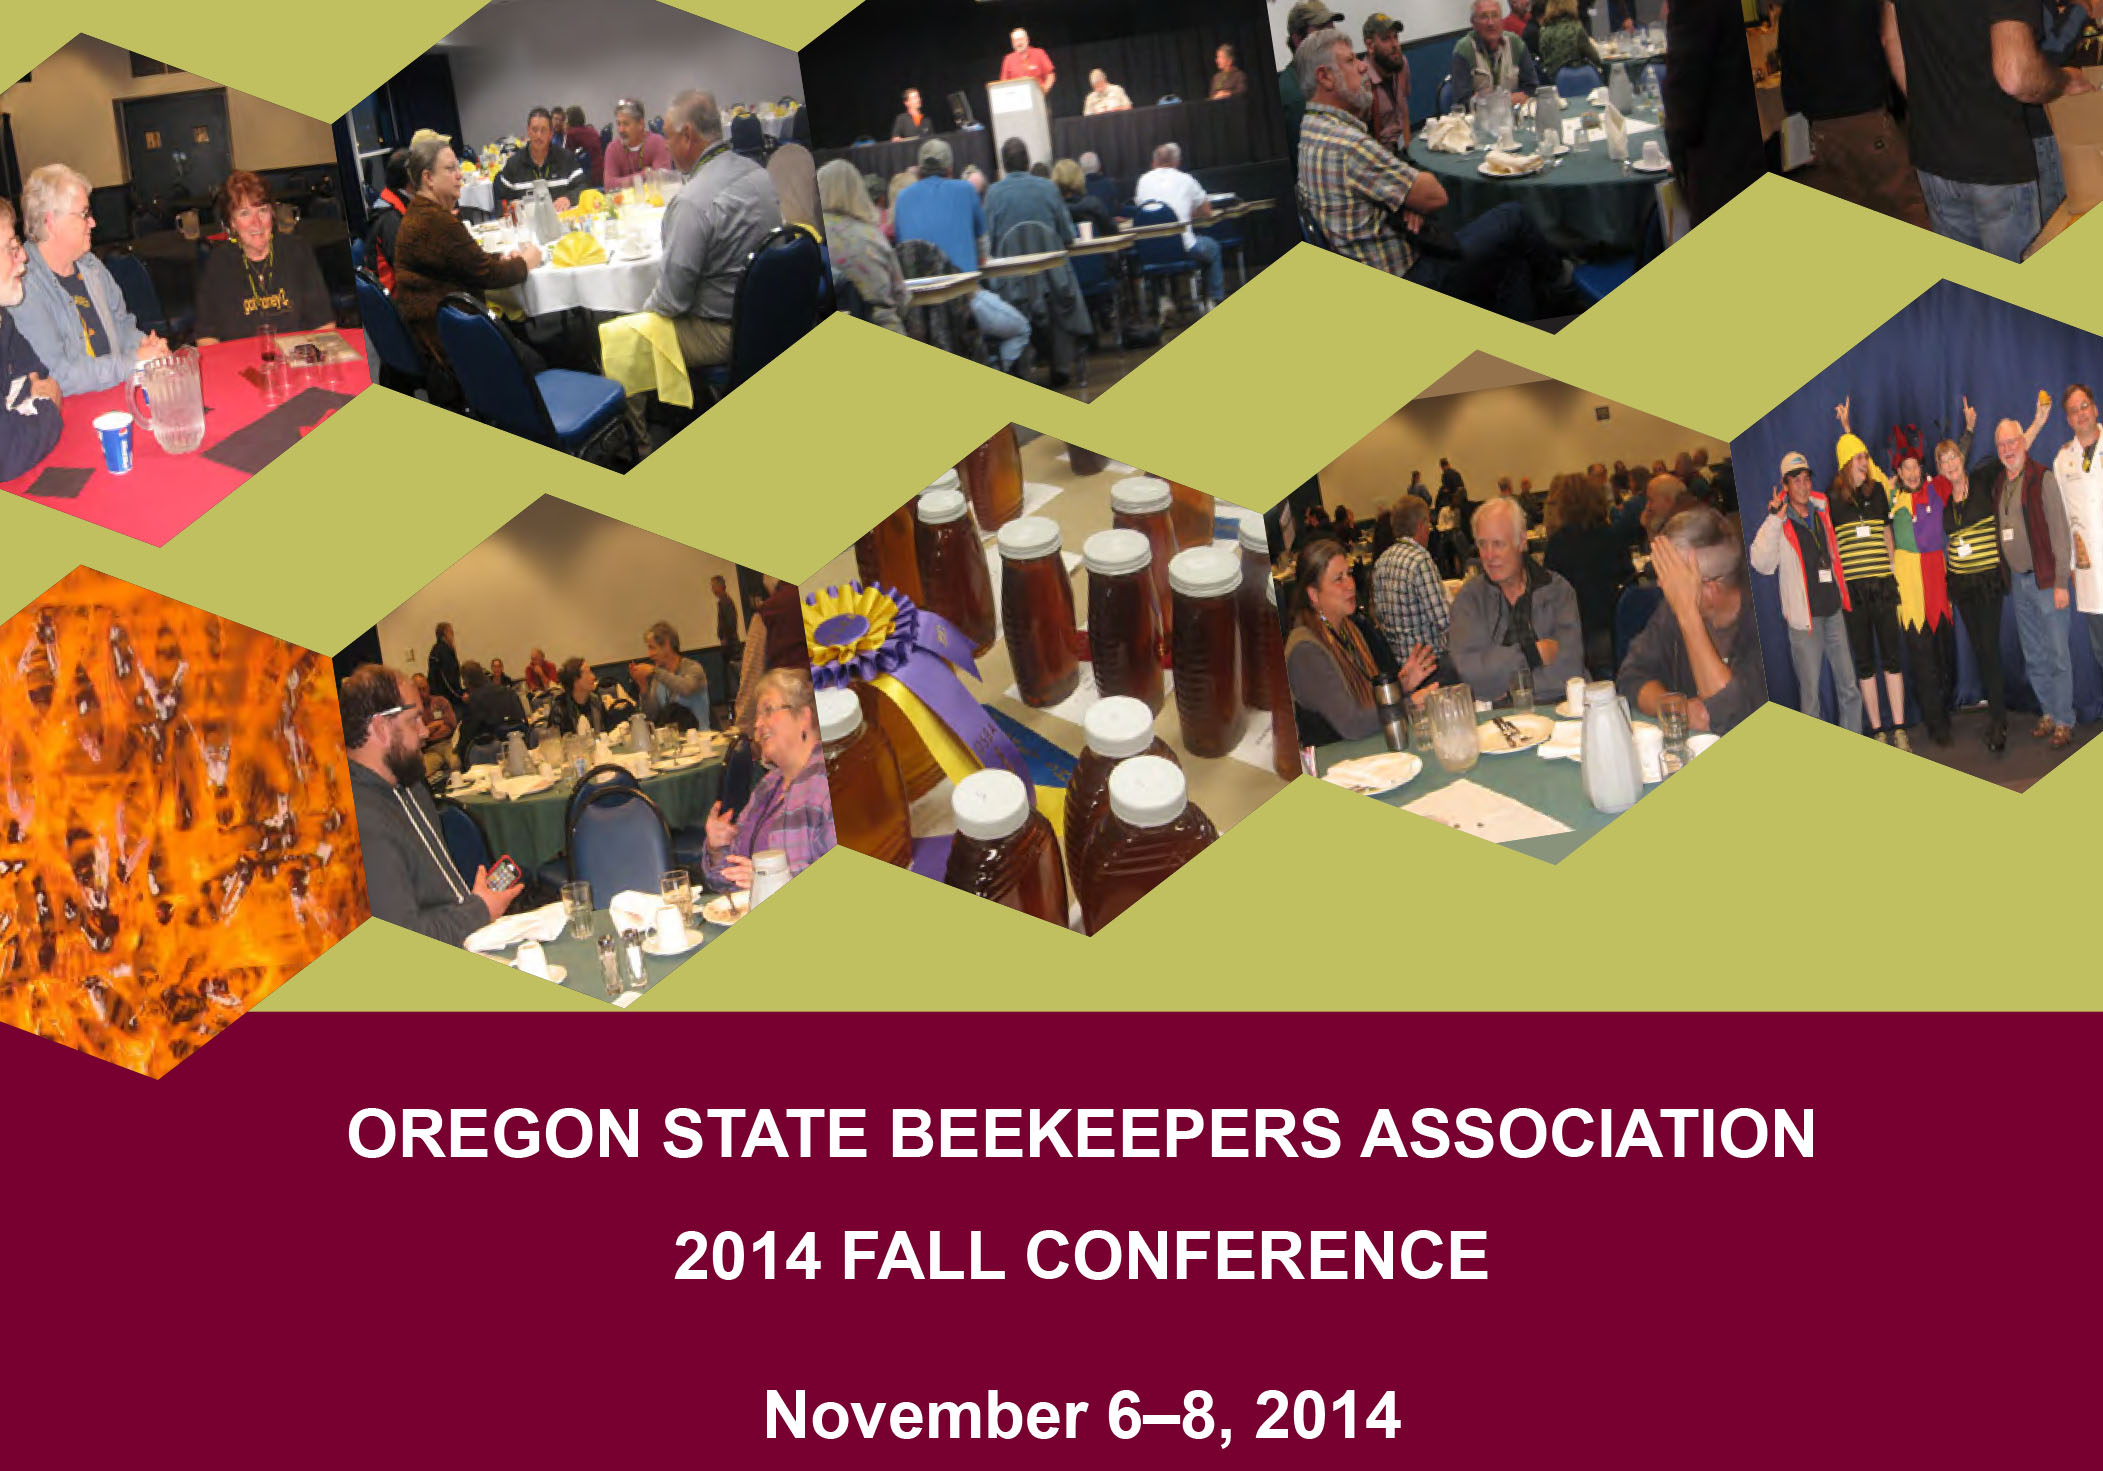 OSBA Fall Conference Programs 2011–2014